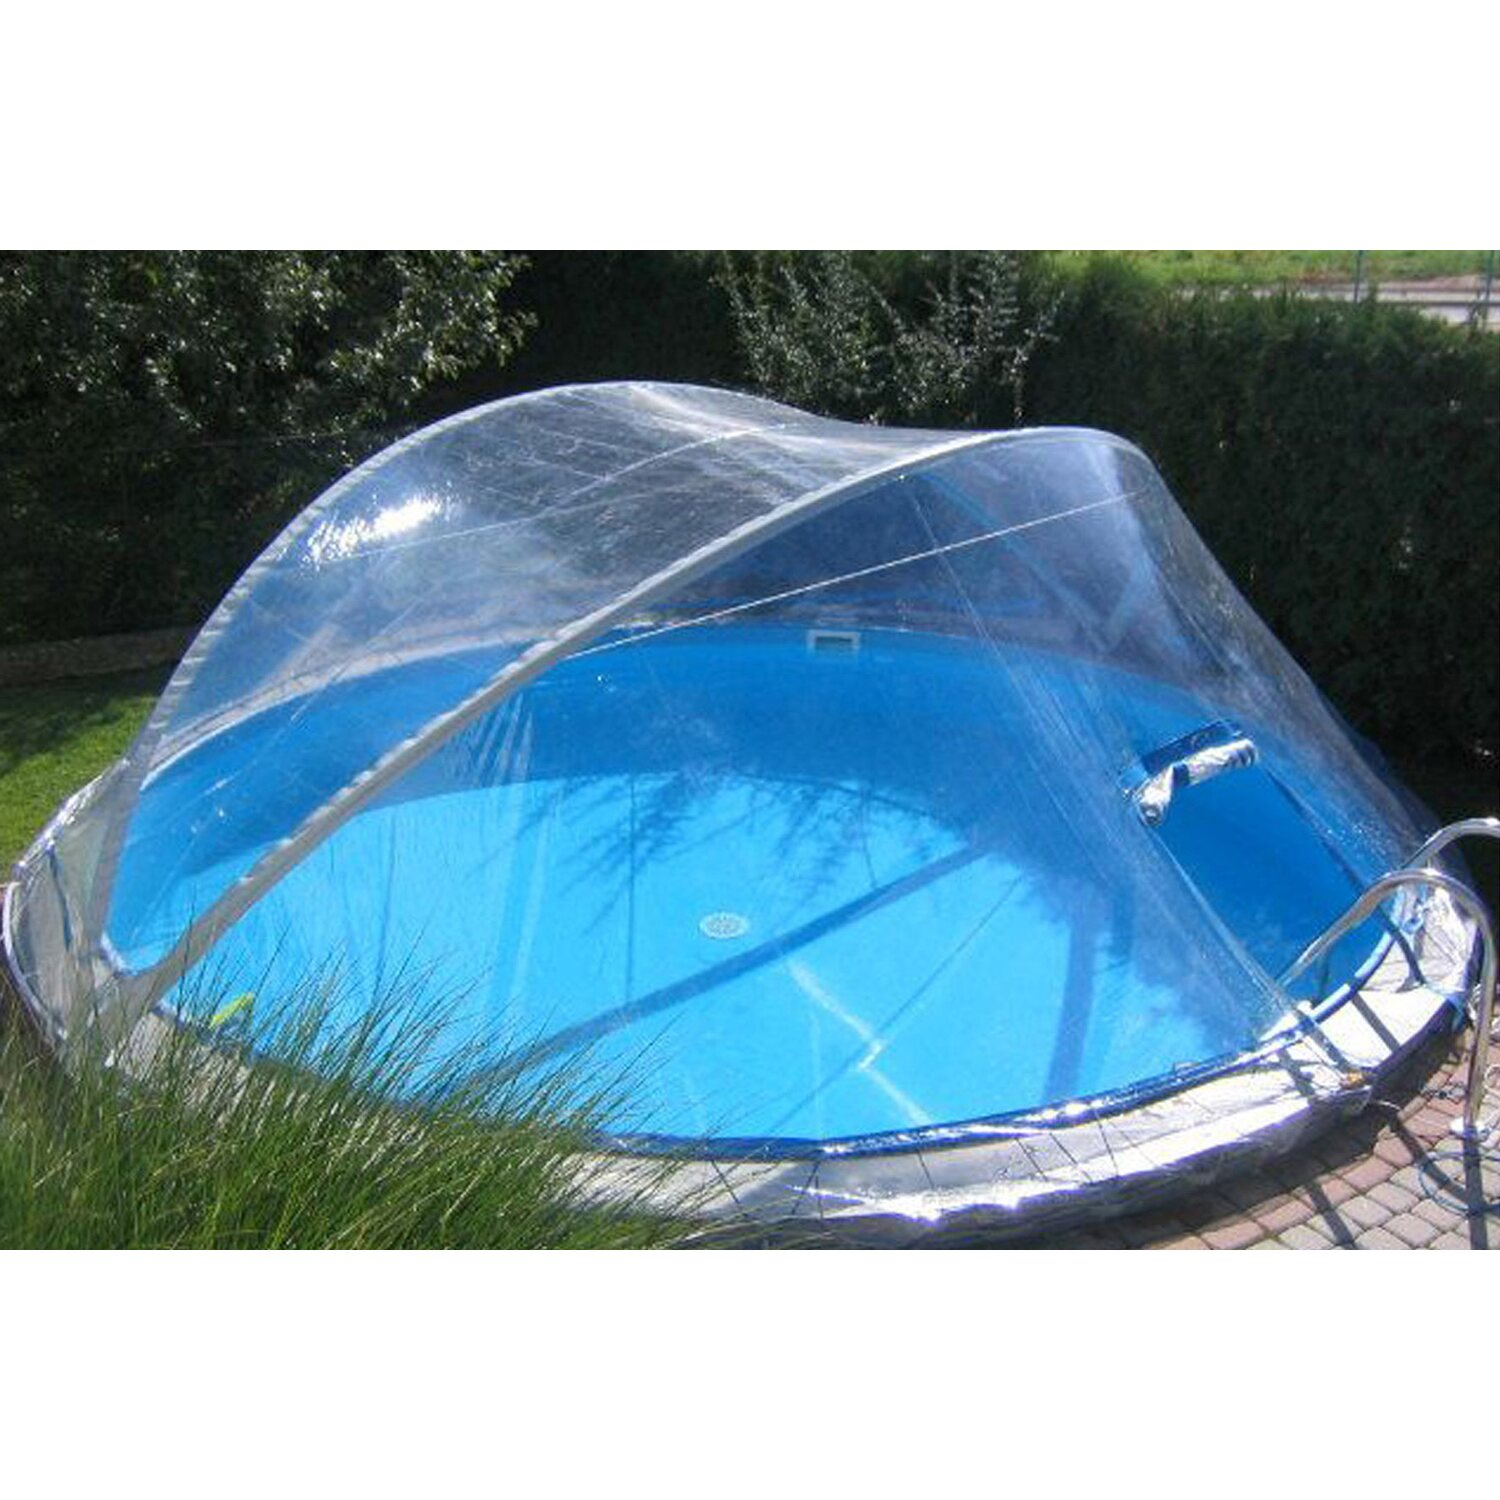 Summer fun pool berdachung cabrio dome f r pools 200 cm - Uberdachung fur pool ...